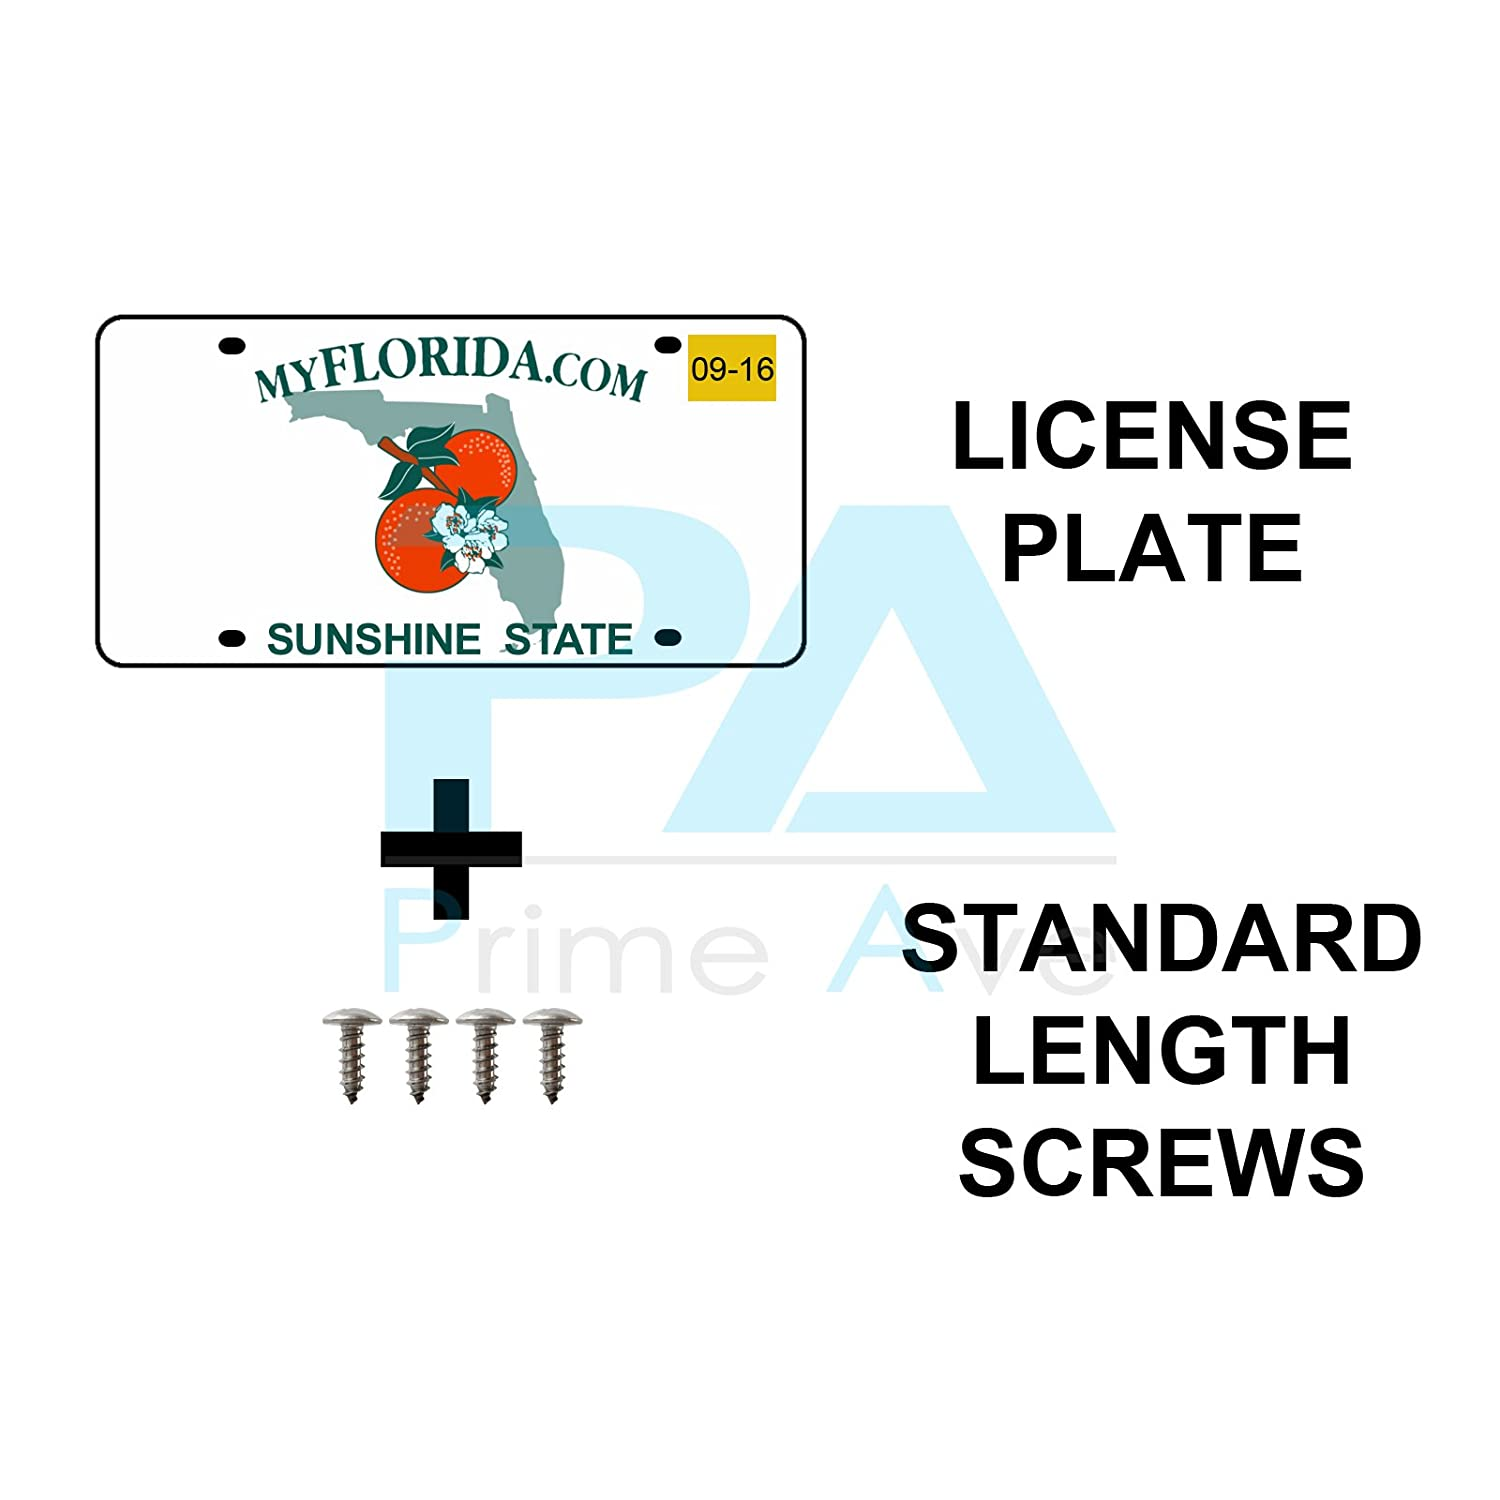 Audi Prime Ave Stainless Steel License Plate Screws Extended Length